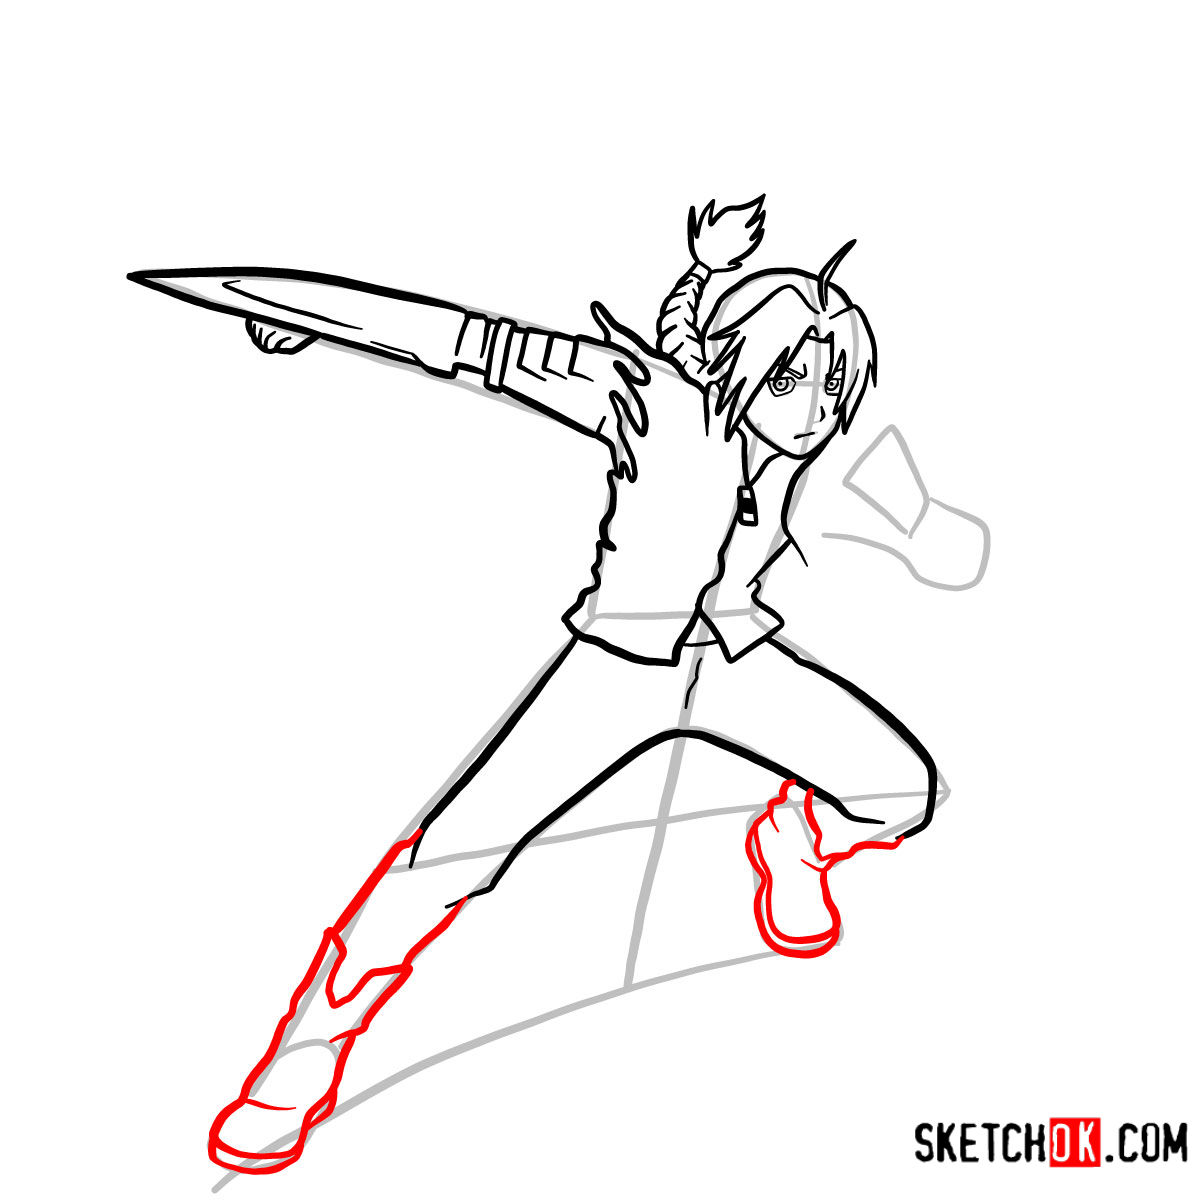 How to draw Edward Elric in a fight | Fullmetal Alchemist - step 10